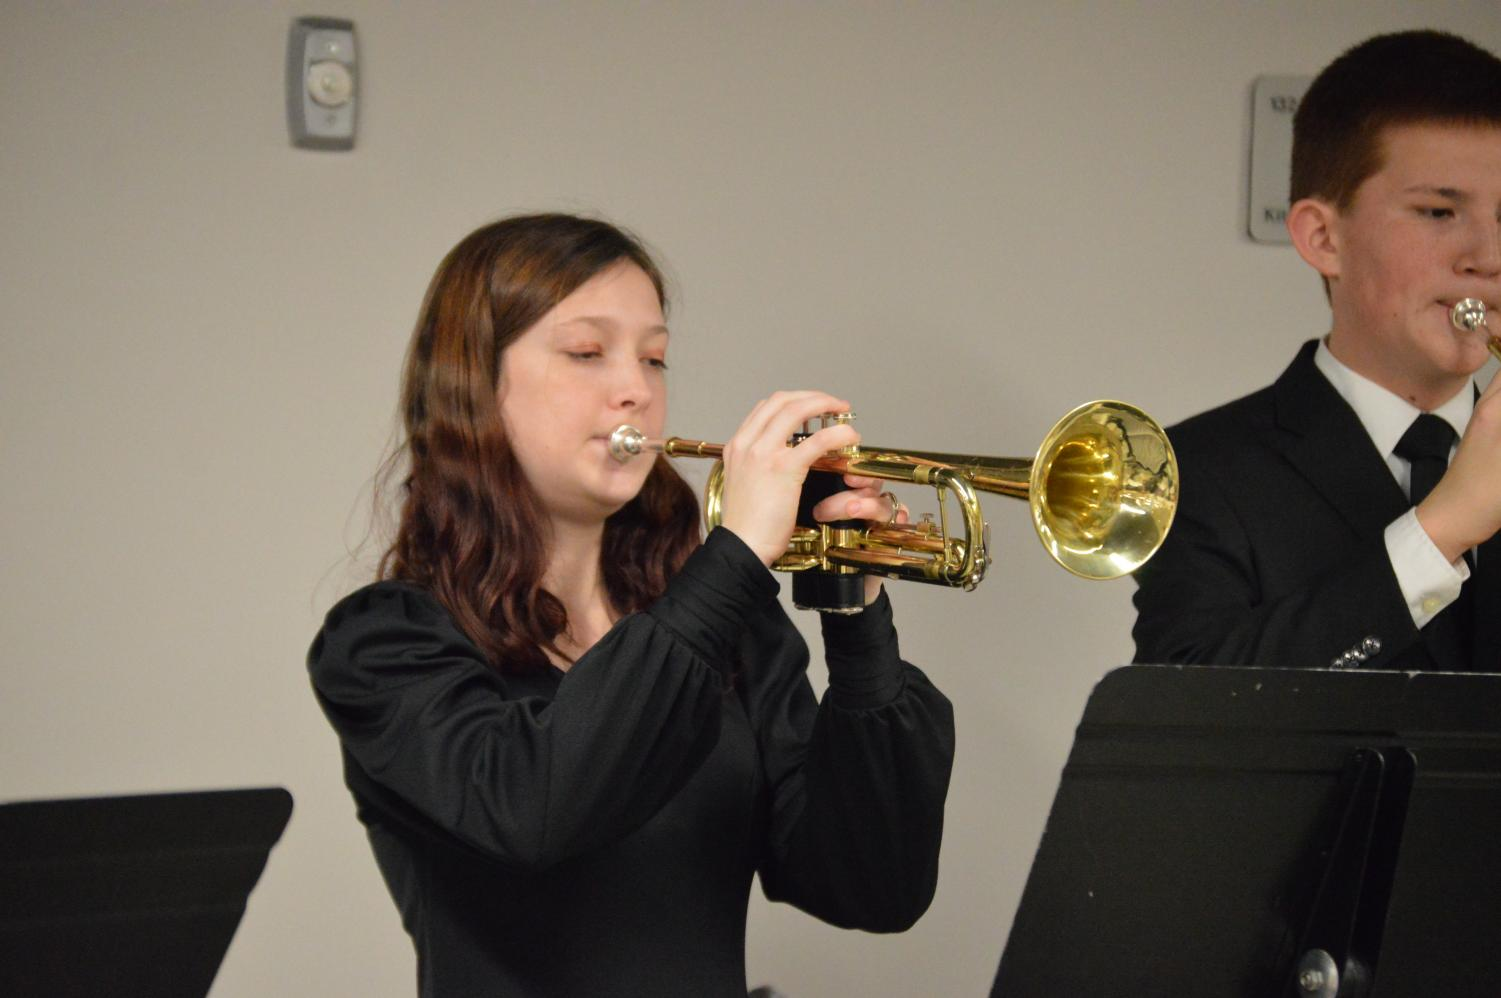 Freshman+Madison+Neuman+plays+her+trumpet+during+warm+ups+to+get+ready+for+the+concert.